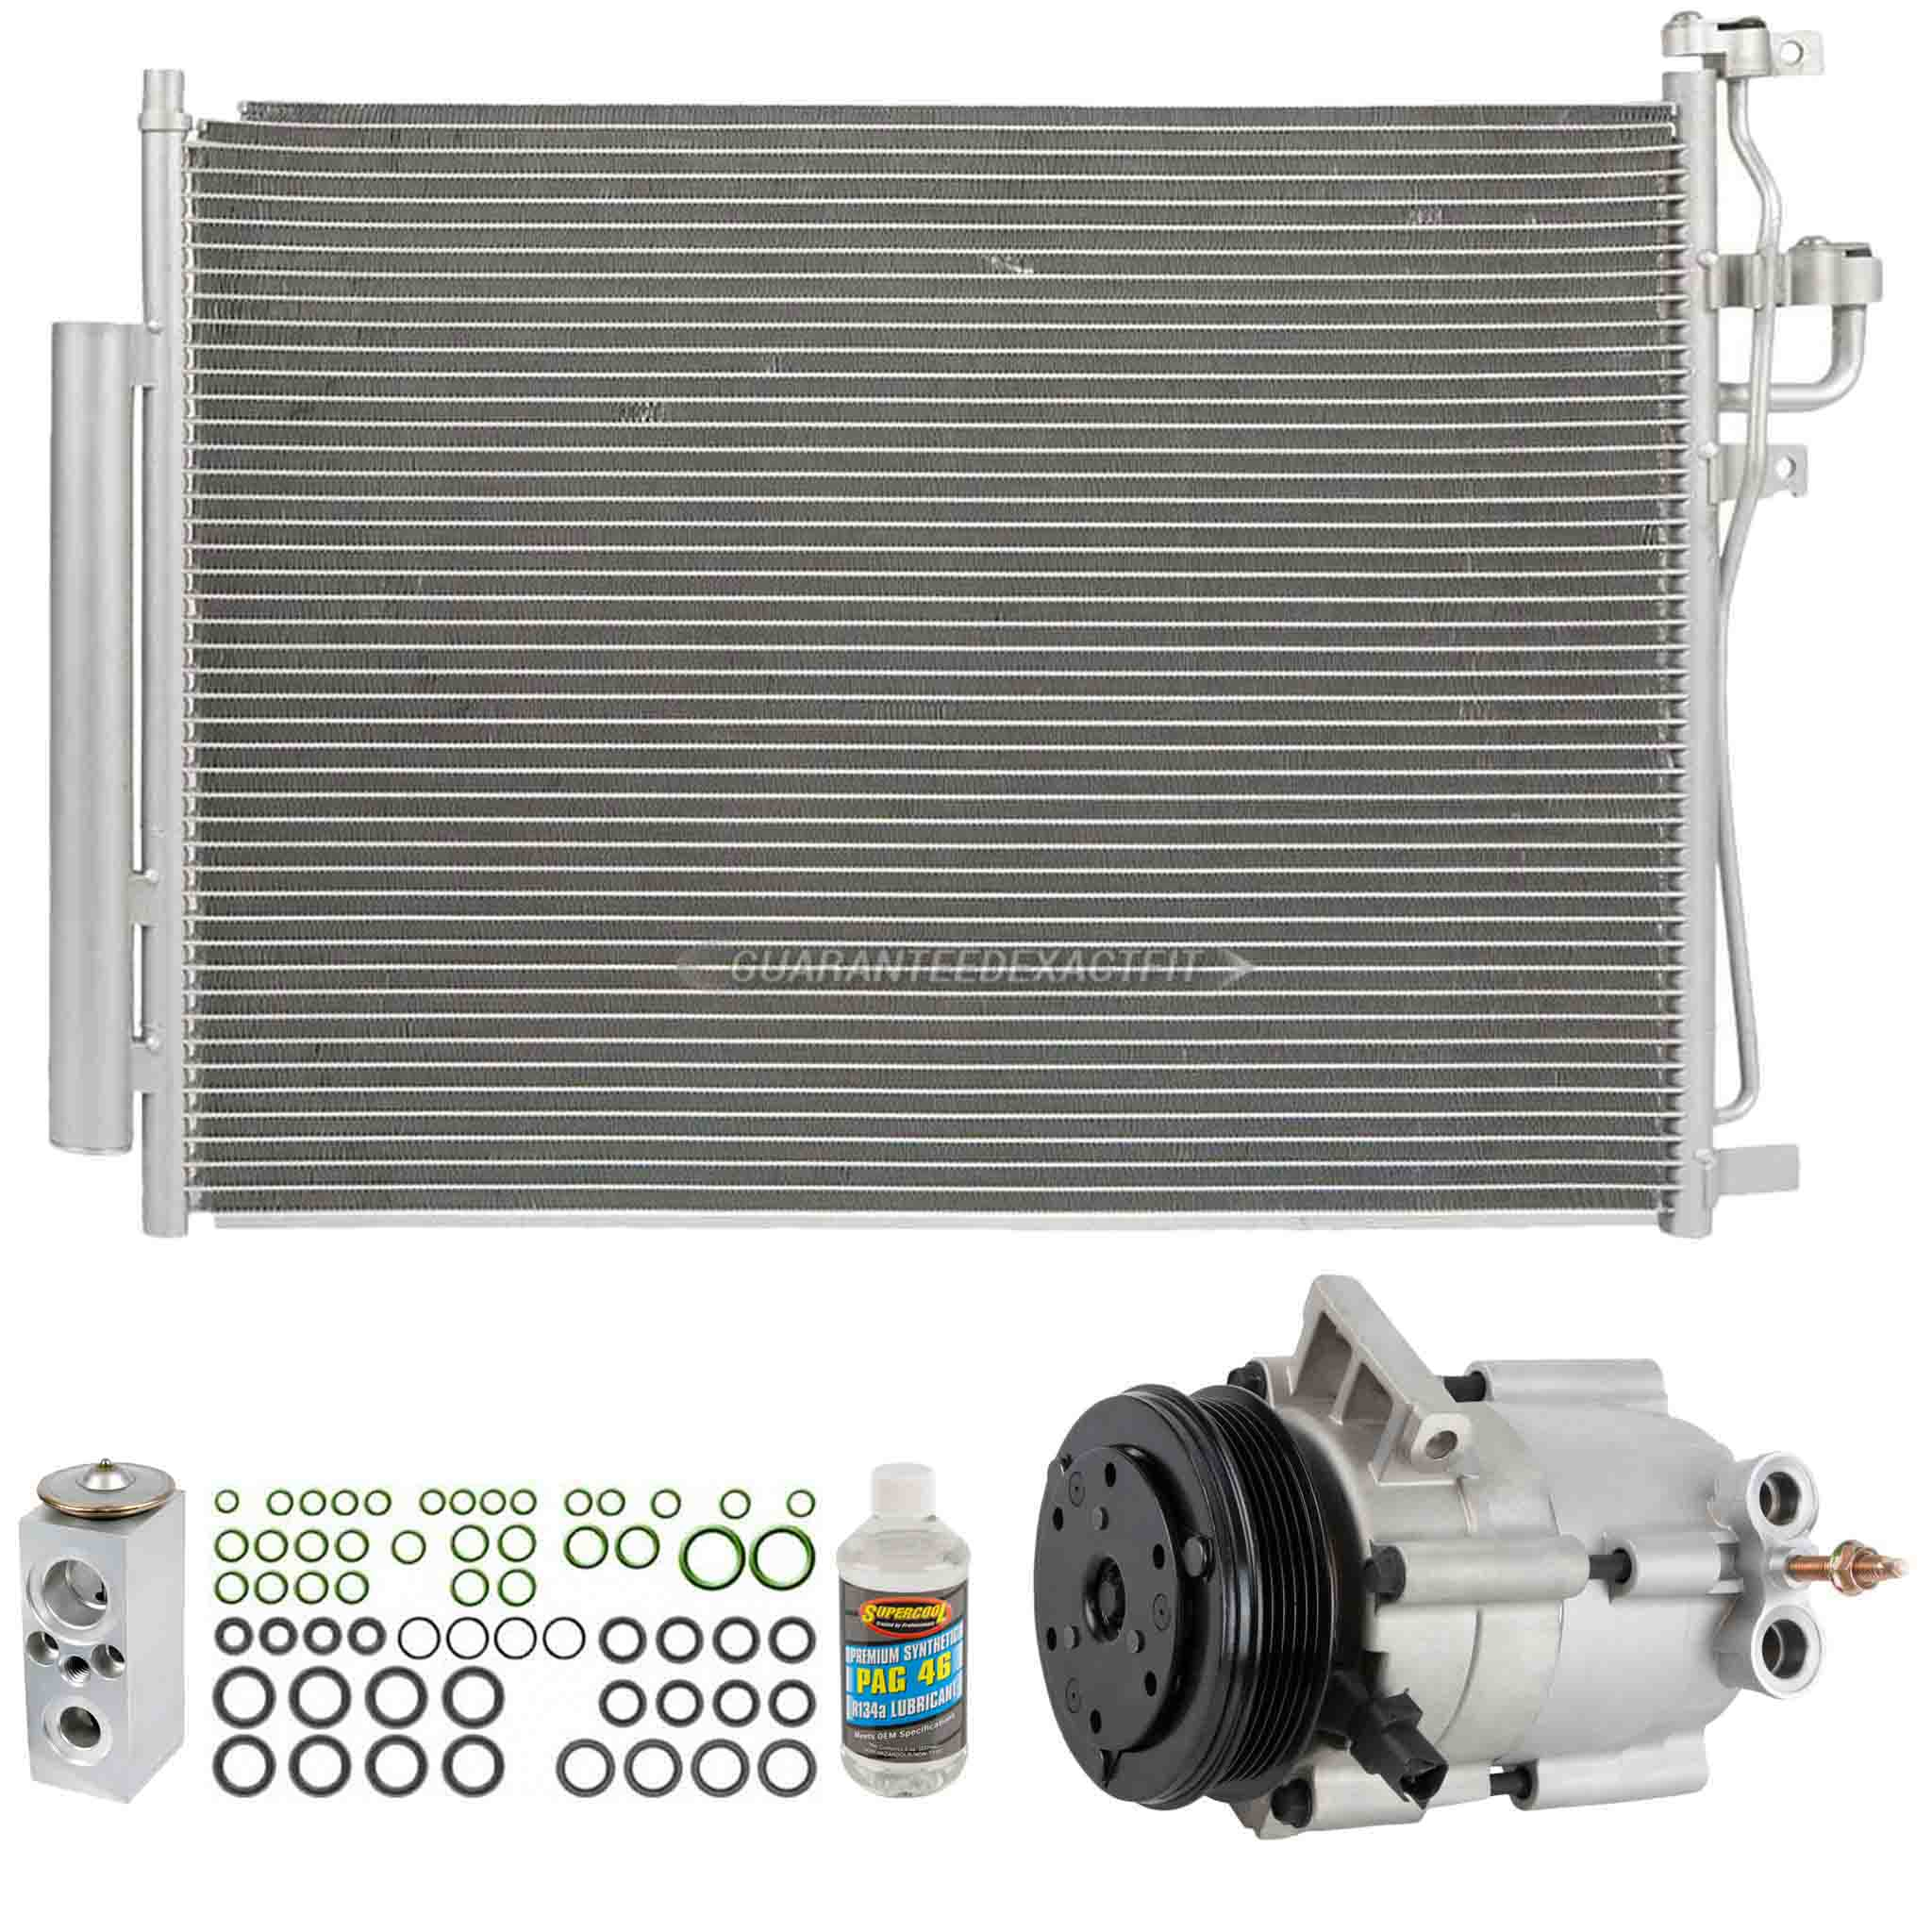 BuyAutoParts 61-94095R6 A/C Compressor and Components Kit